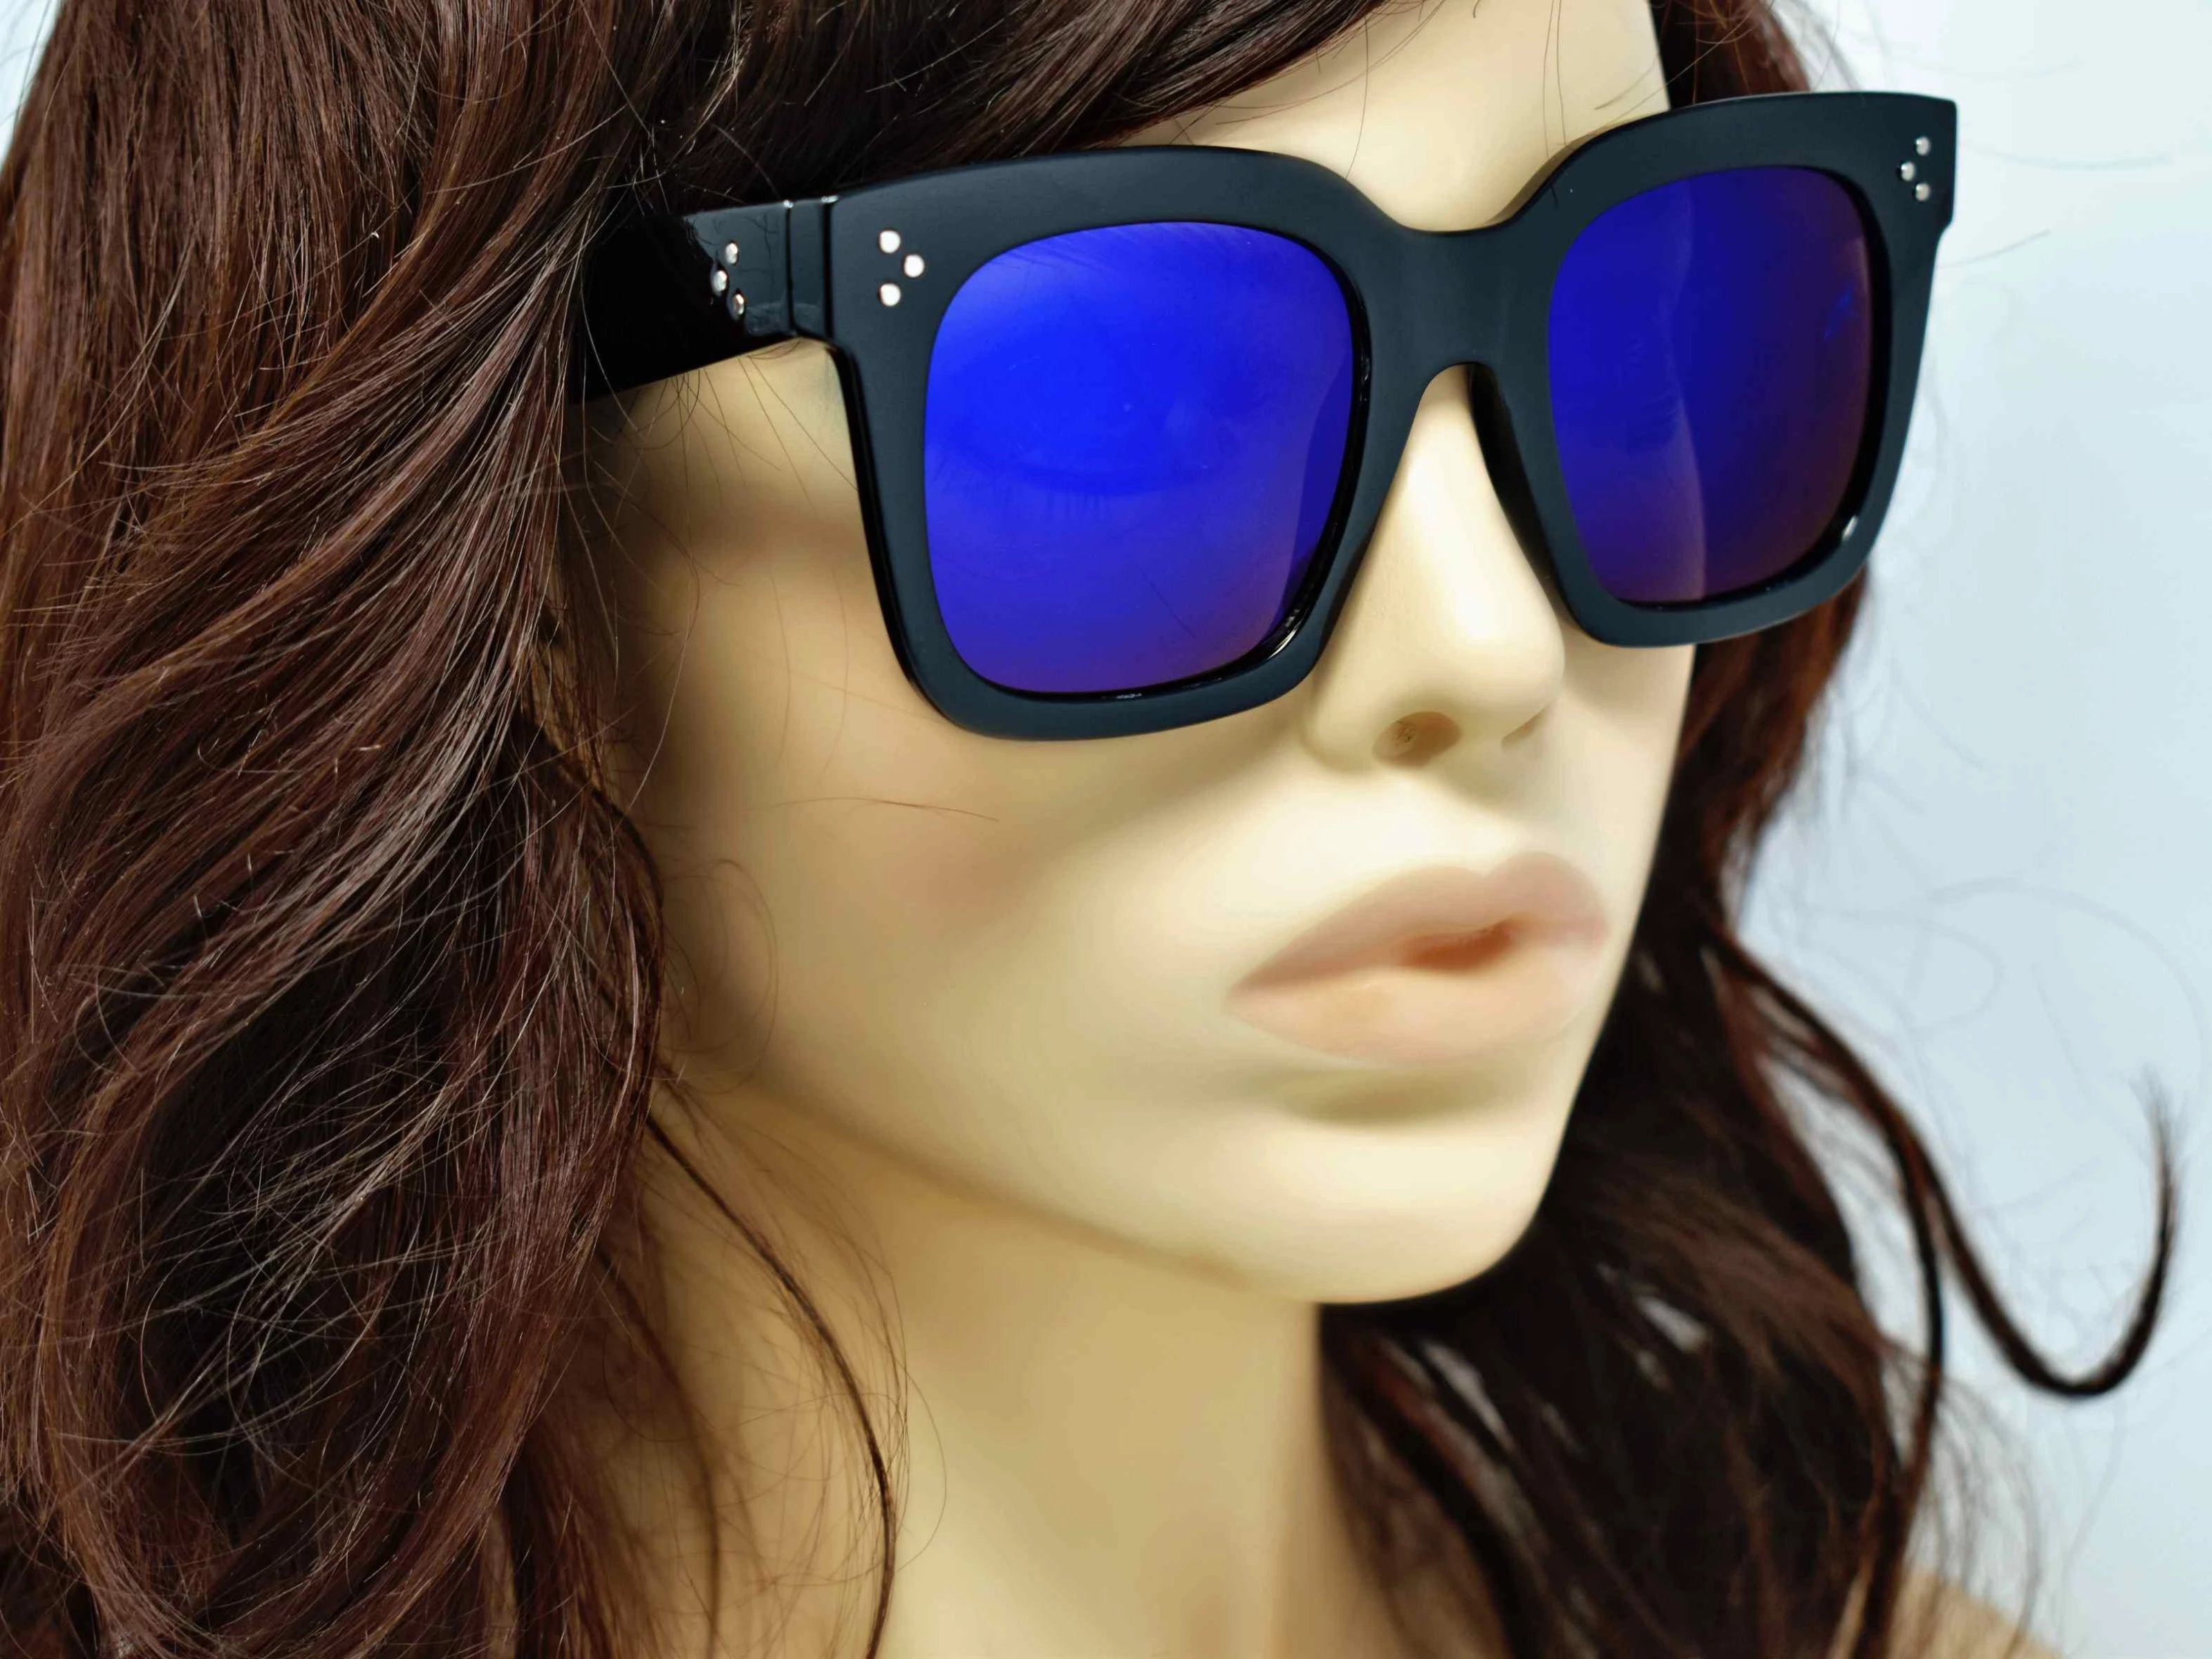 Cool and Classic you can always depend on our Amaranth Black framed sunglasses with a two toned blue mirrored lens in a wayfarer shape.